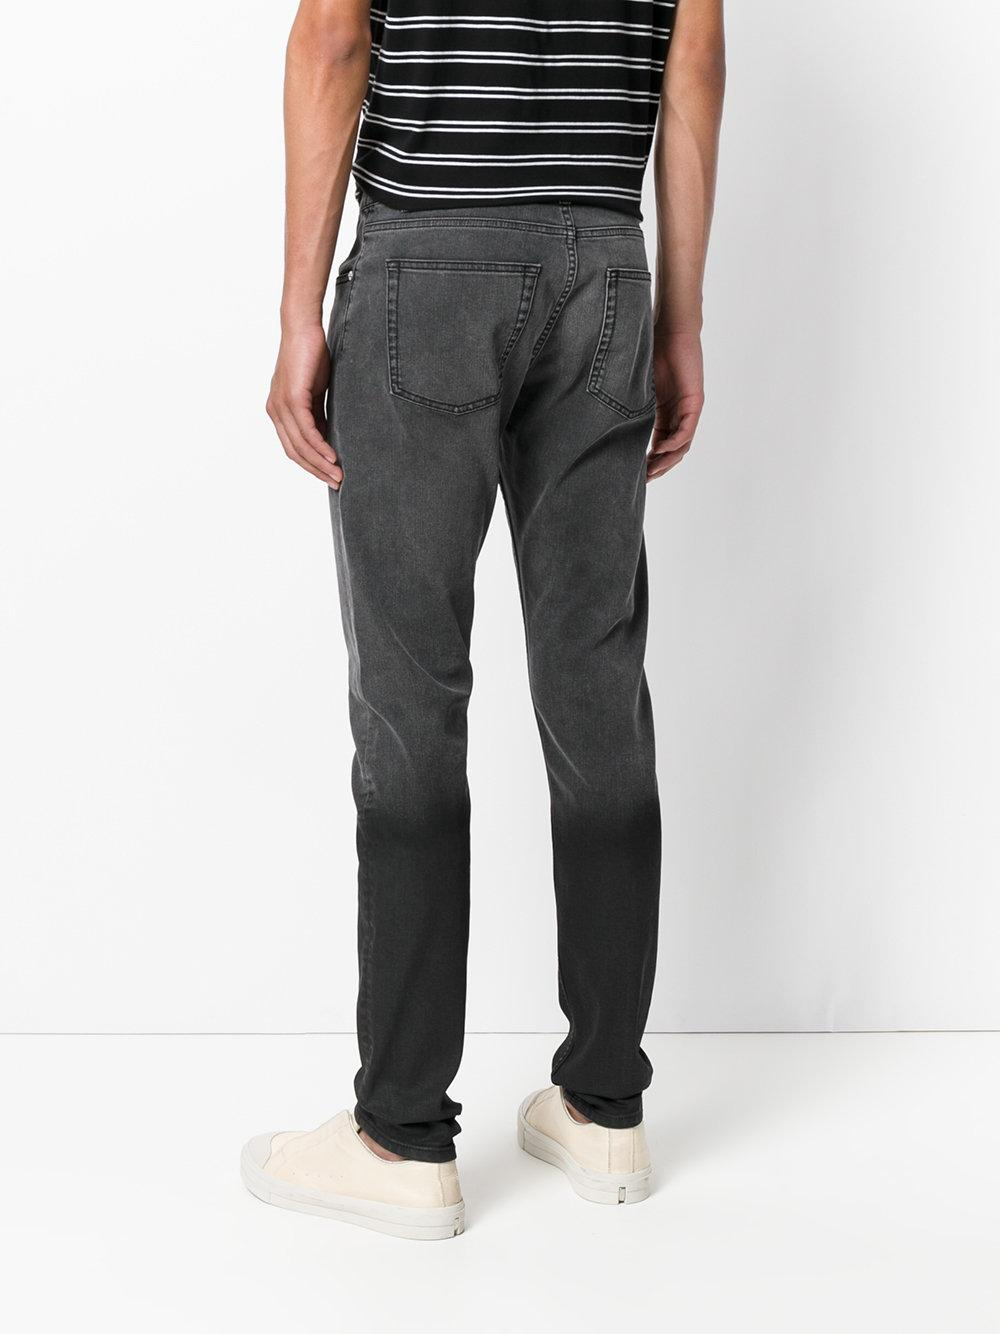 Alexander mcqueen Two-tone Slim-fit Jeans in Gray for Men | Lyst